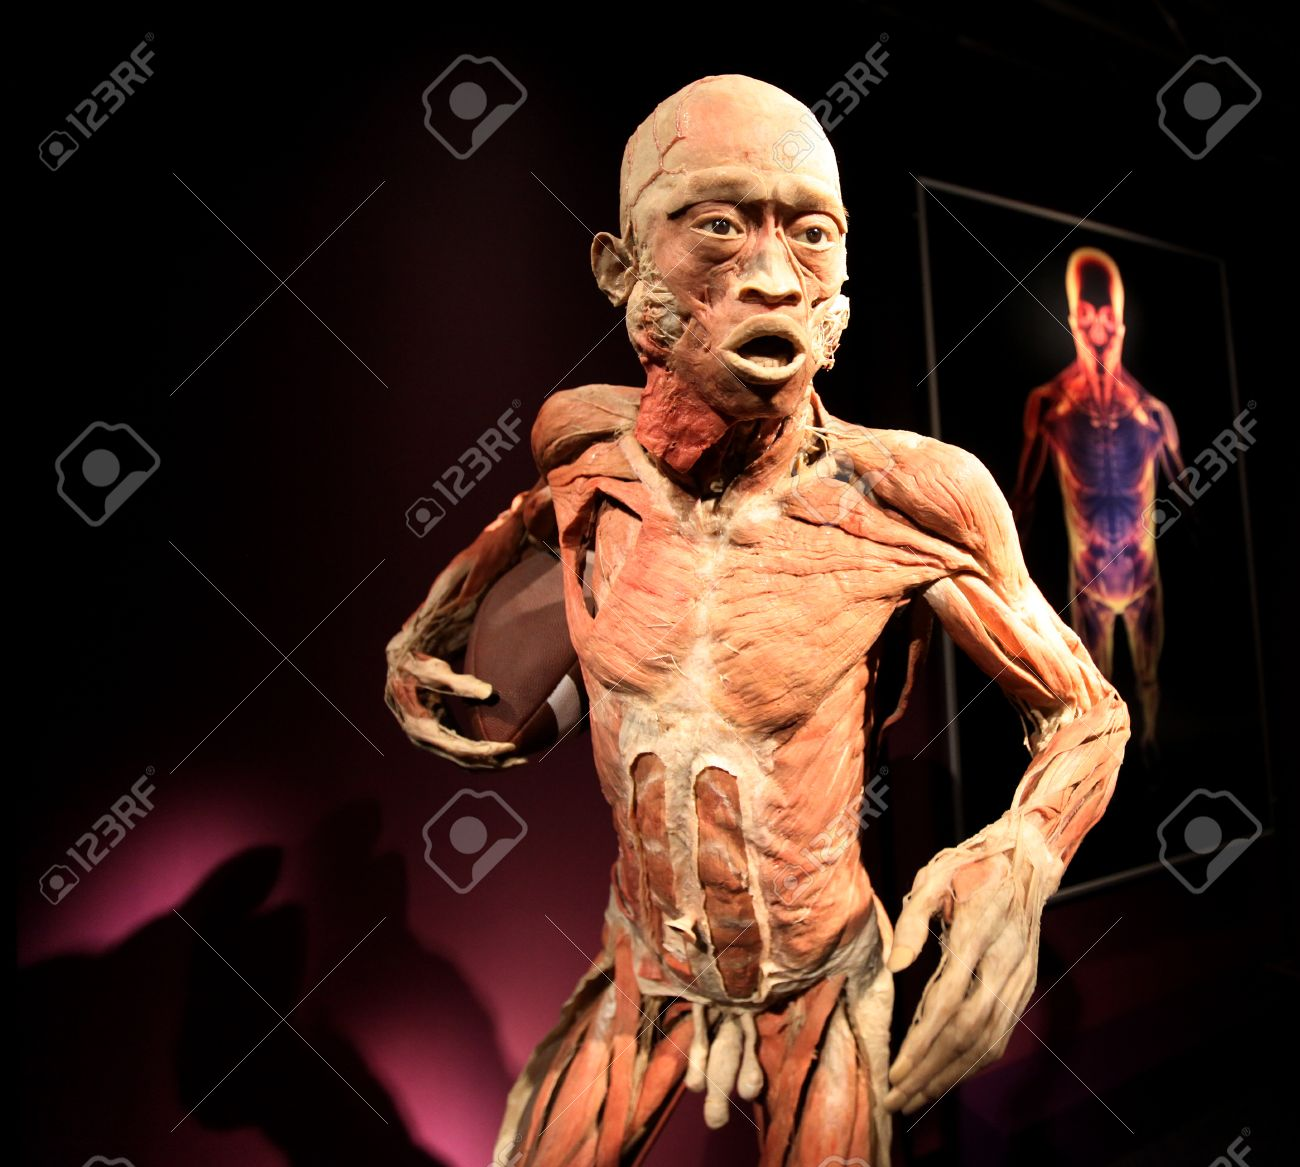 Krakow Poland March 11 2013 The Human Body Exhibition The